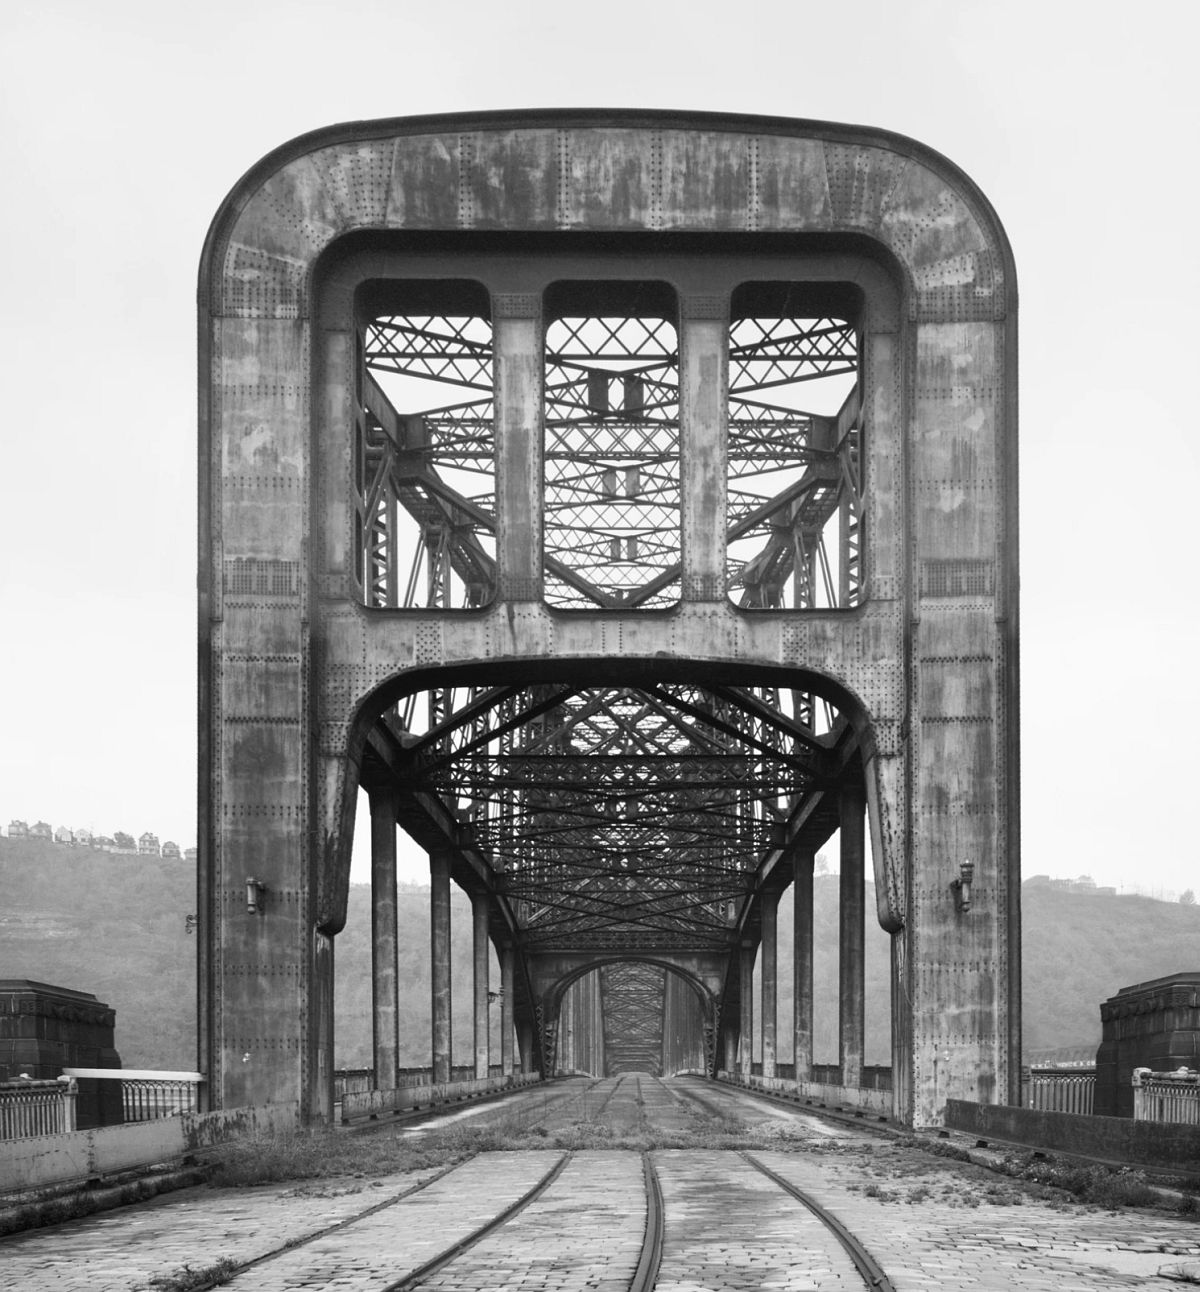 Point Bridge, Monongahela River, Pittsburgh, Pennsylvania,1967